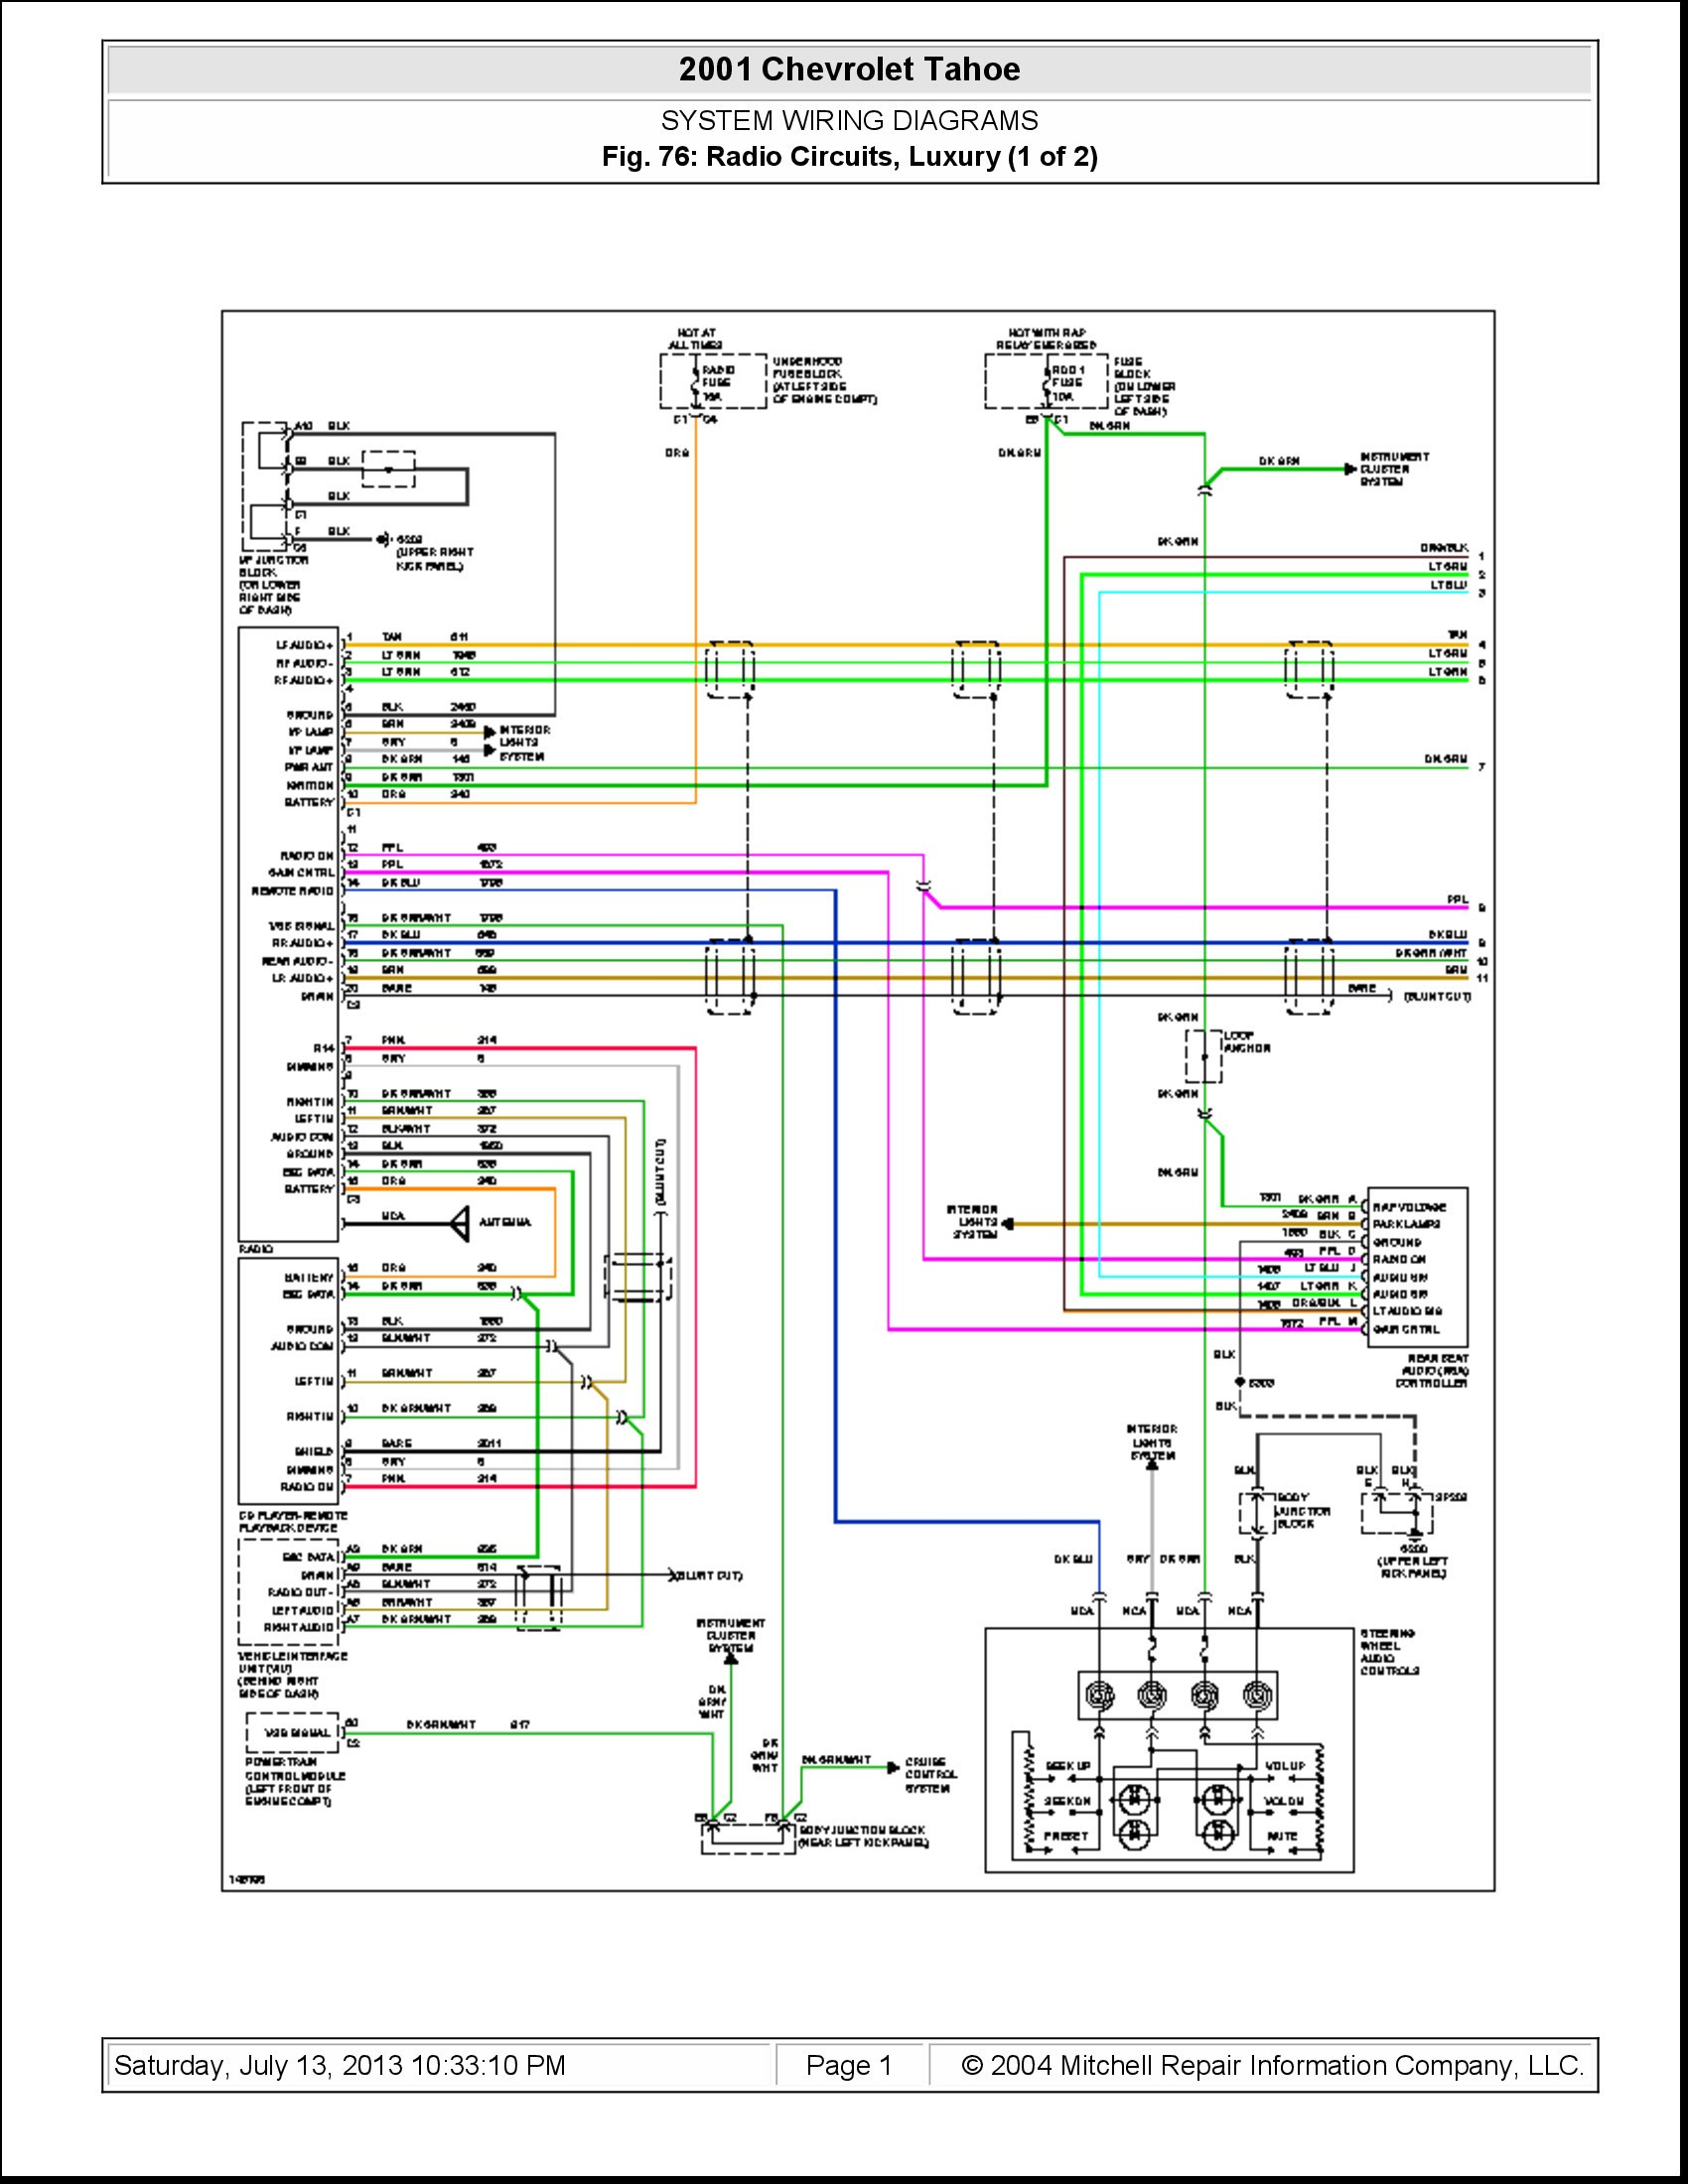 2001 Chevy Blazer Wiring Diagram Chevy Tahoe Radio Wiring Diagram 2001 Chevy  S10 Radio Wiring Diagram